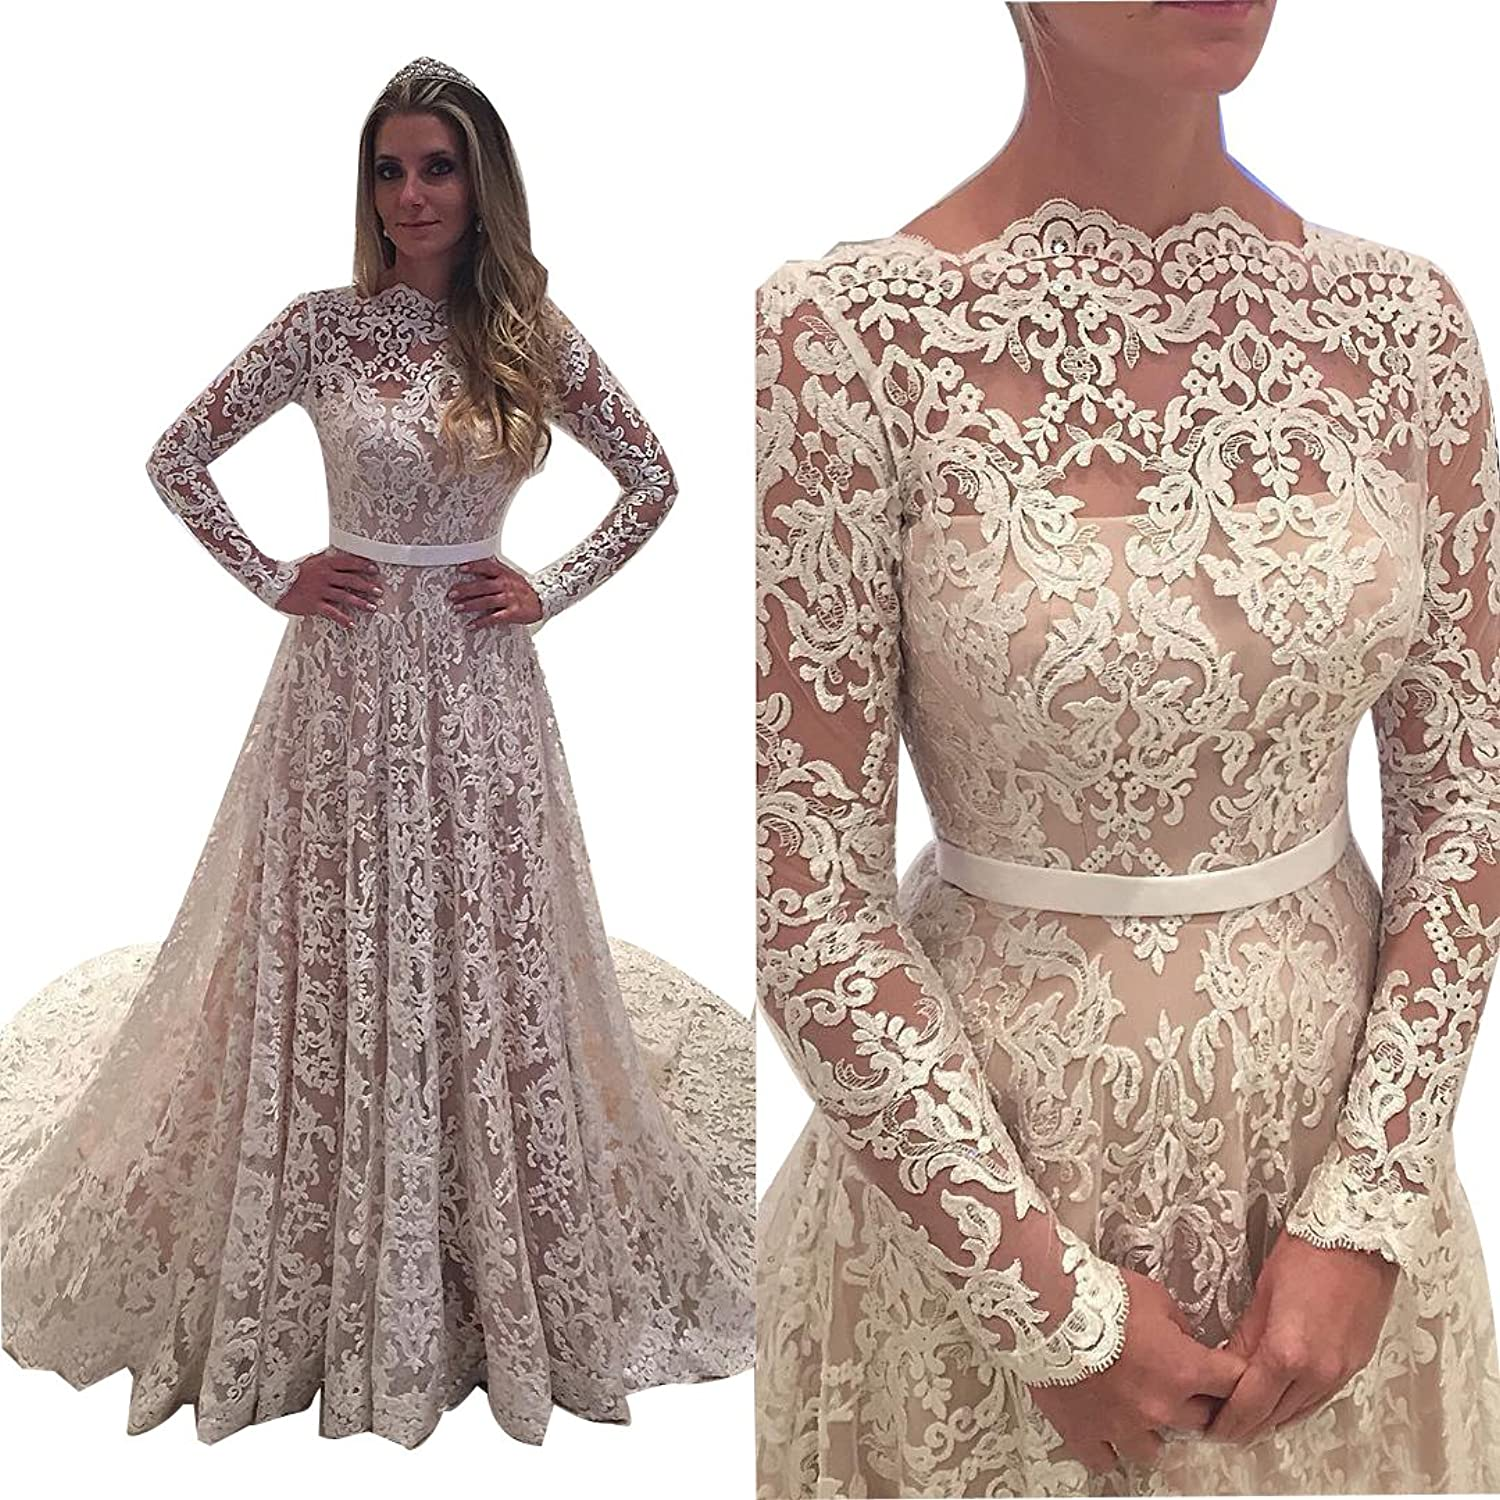 Vivibridal Women's Long Bateau Neck Lace Country Wedding Dresses with Long Sleeves